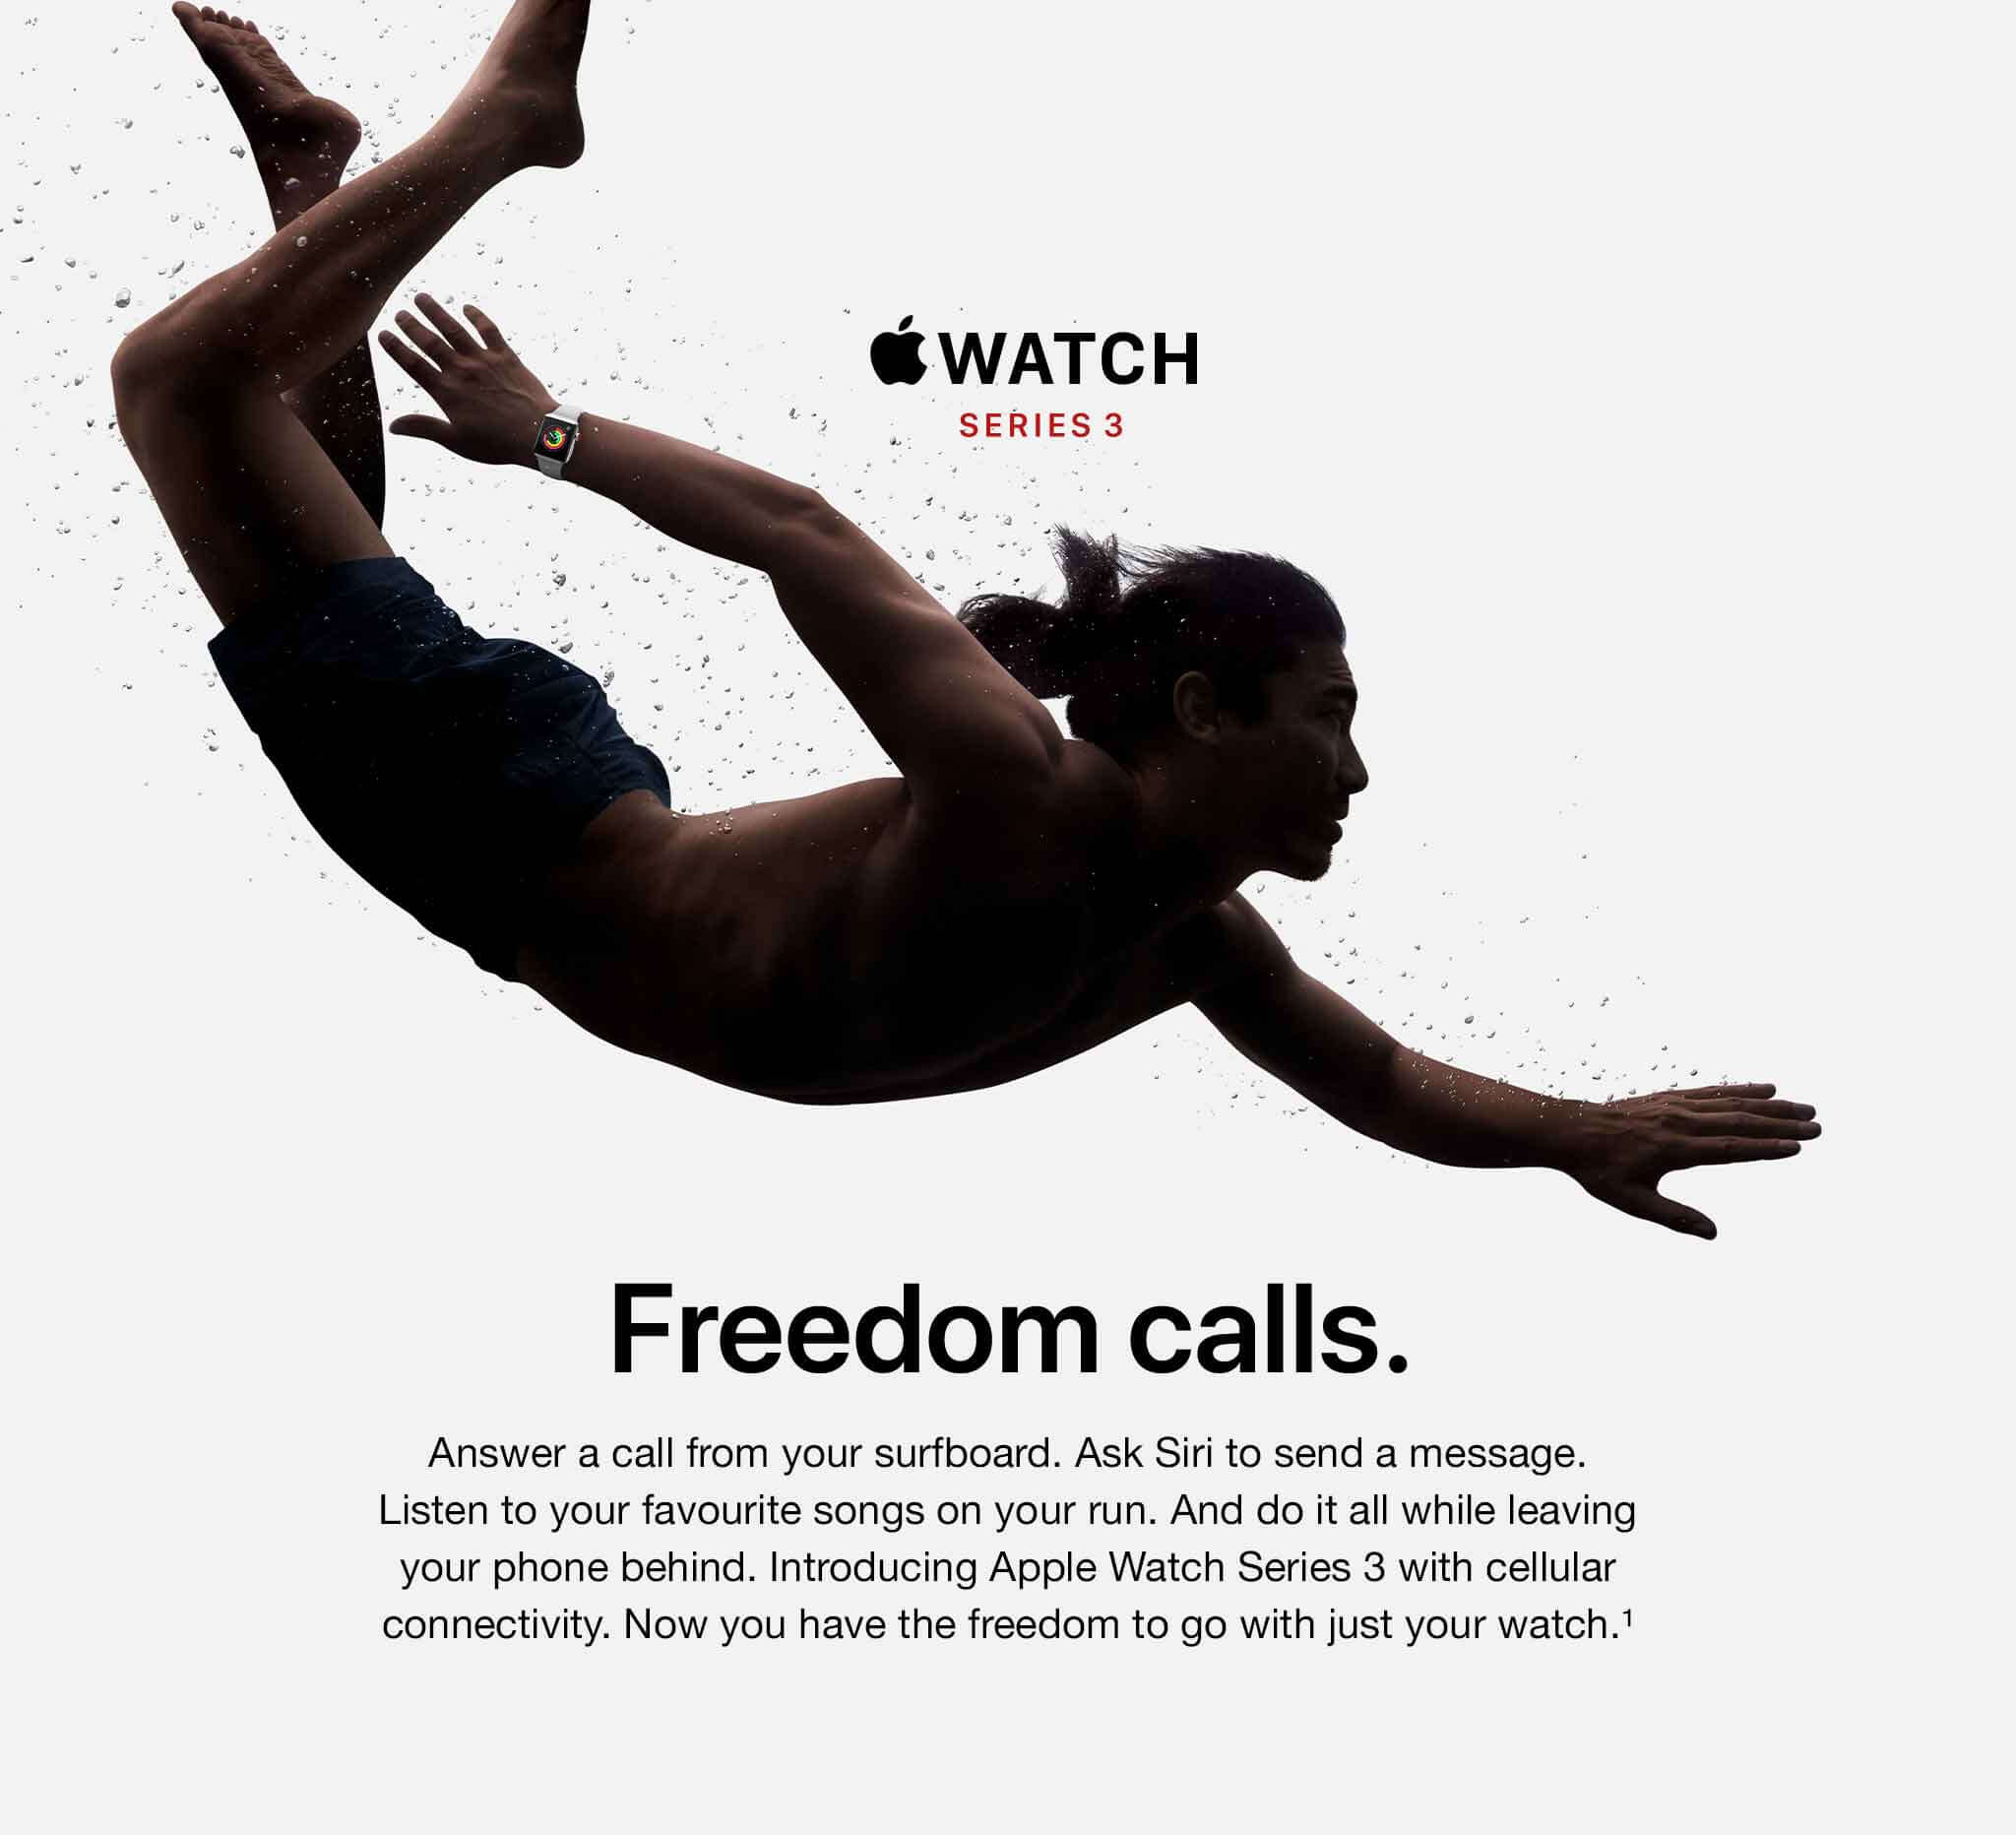 Apple Watch 3 freedom calls